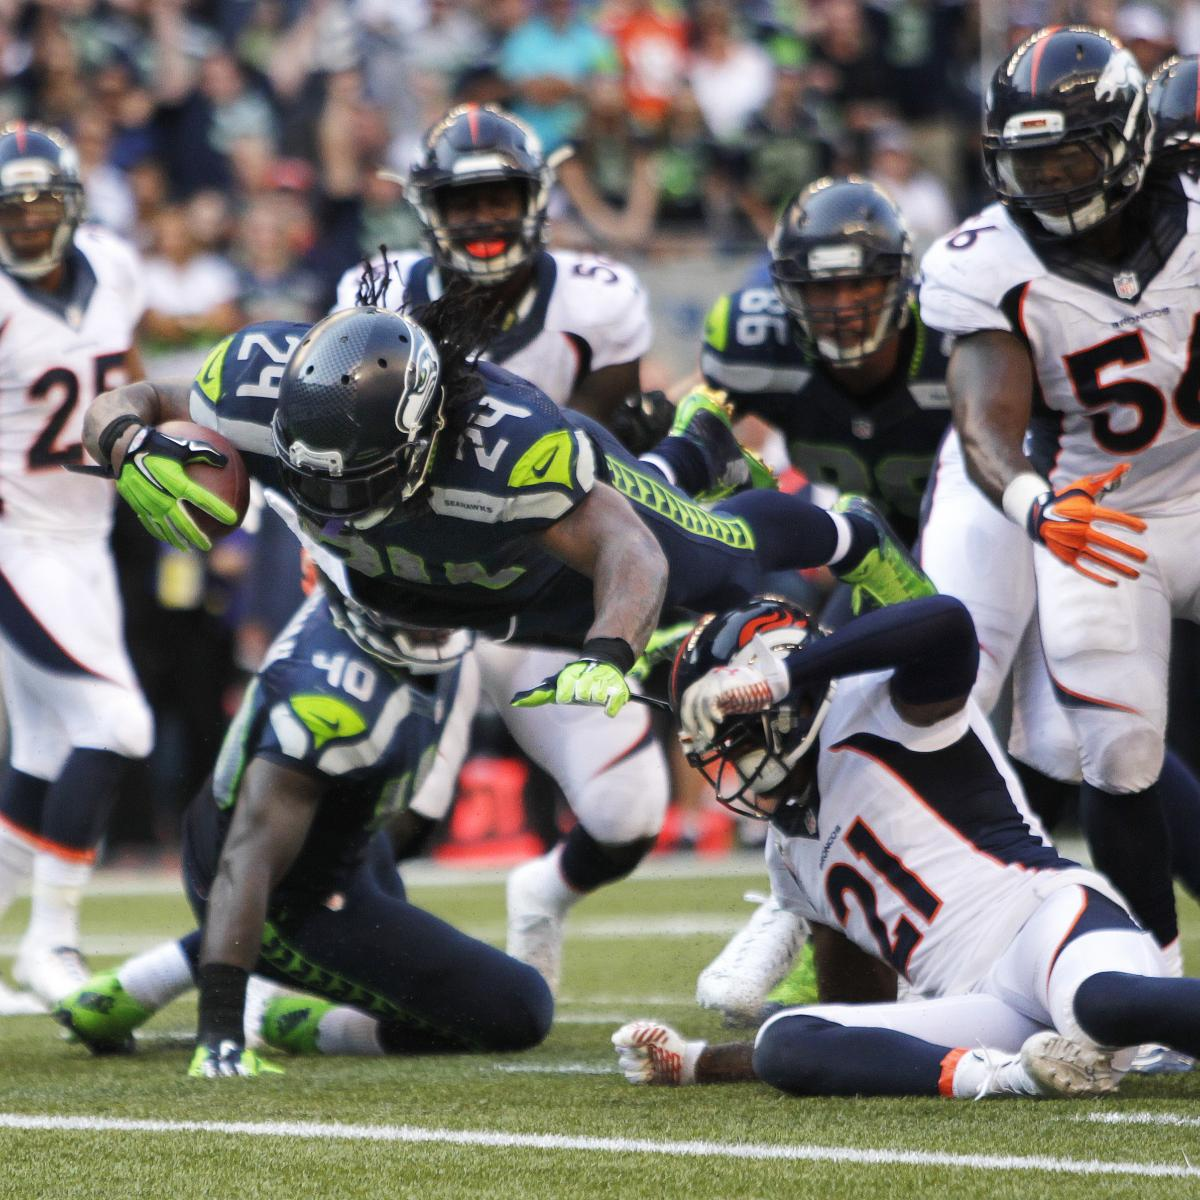 Denver Broncos Vs. Seattle Seahawks: Video Highlights And